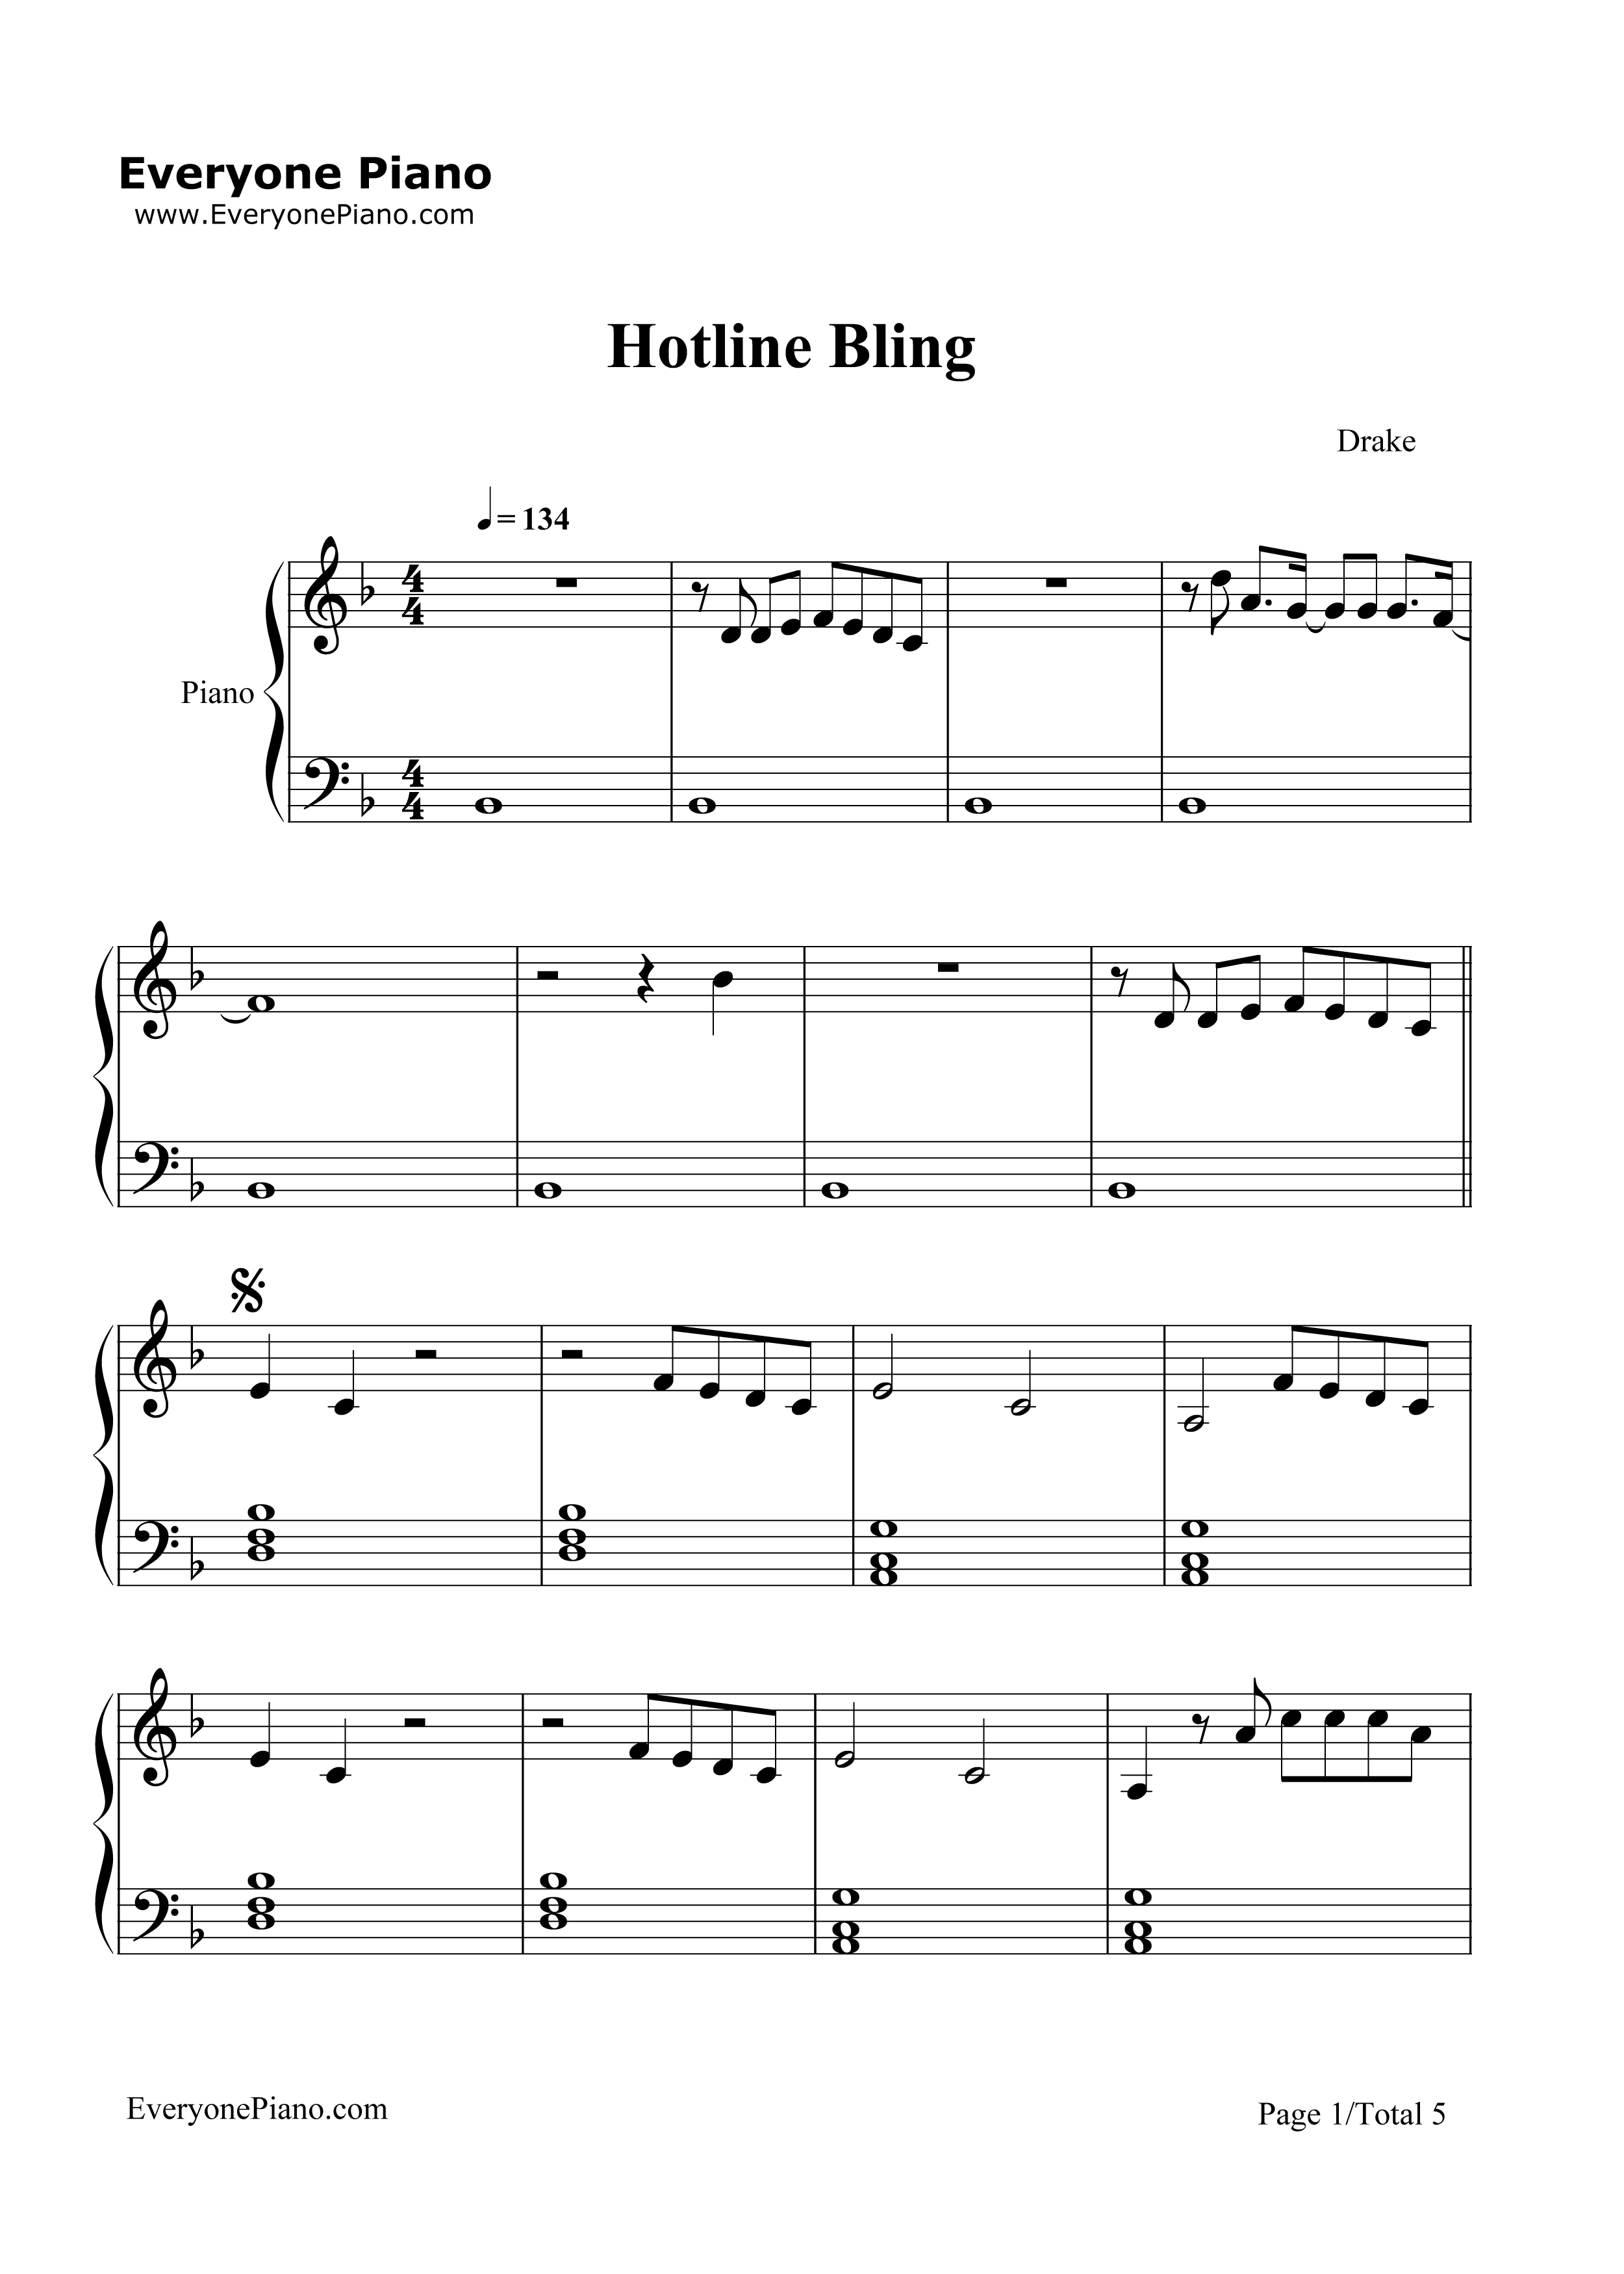 Hotline Bling-Drake Stave Preview 1-Free Piano Sheet Music u0026 Piano Chords